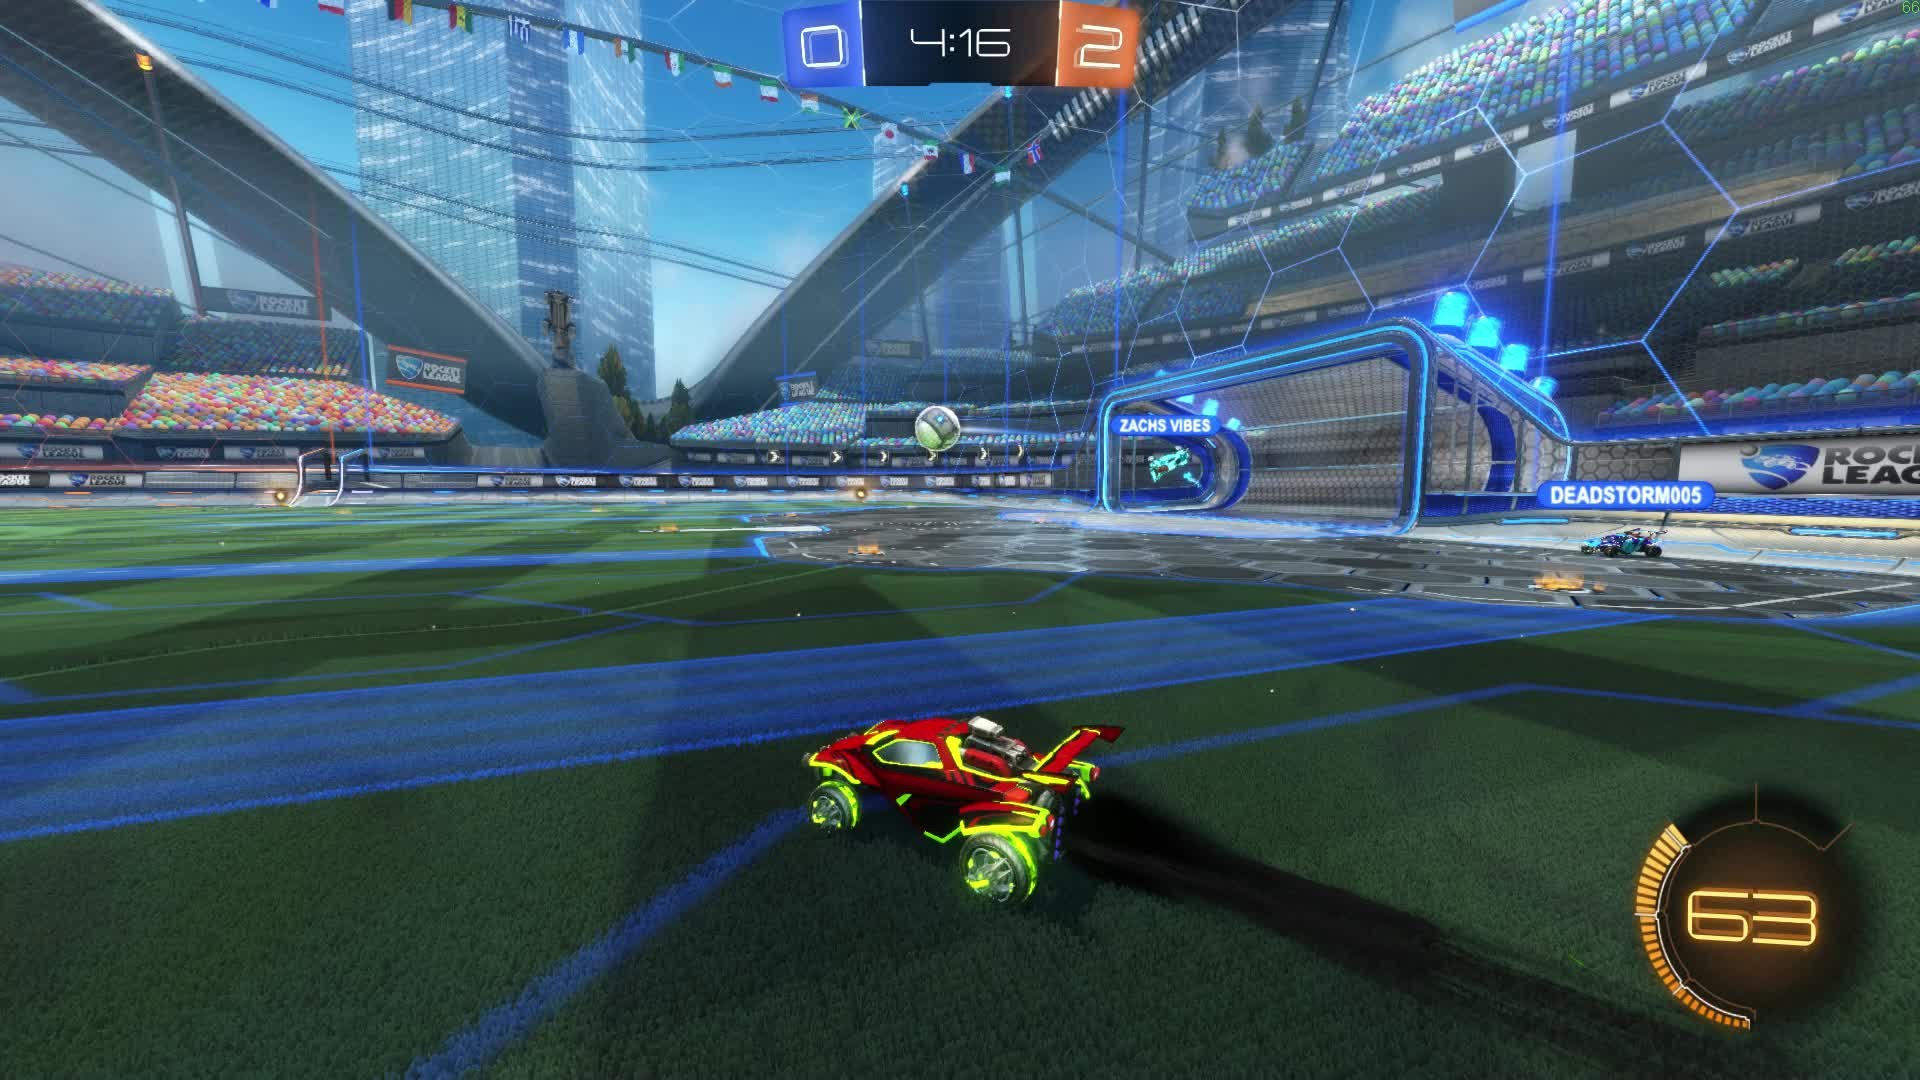 Plat 1, Plat1, Psyonix, RL, Rocket League, RocketLeague, Squishy, SquishyMuffinz, Satisfying GIFs